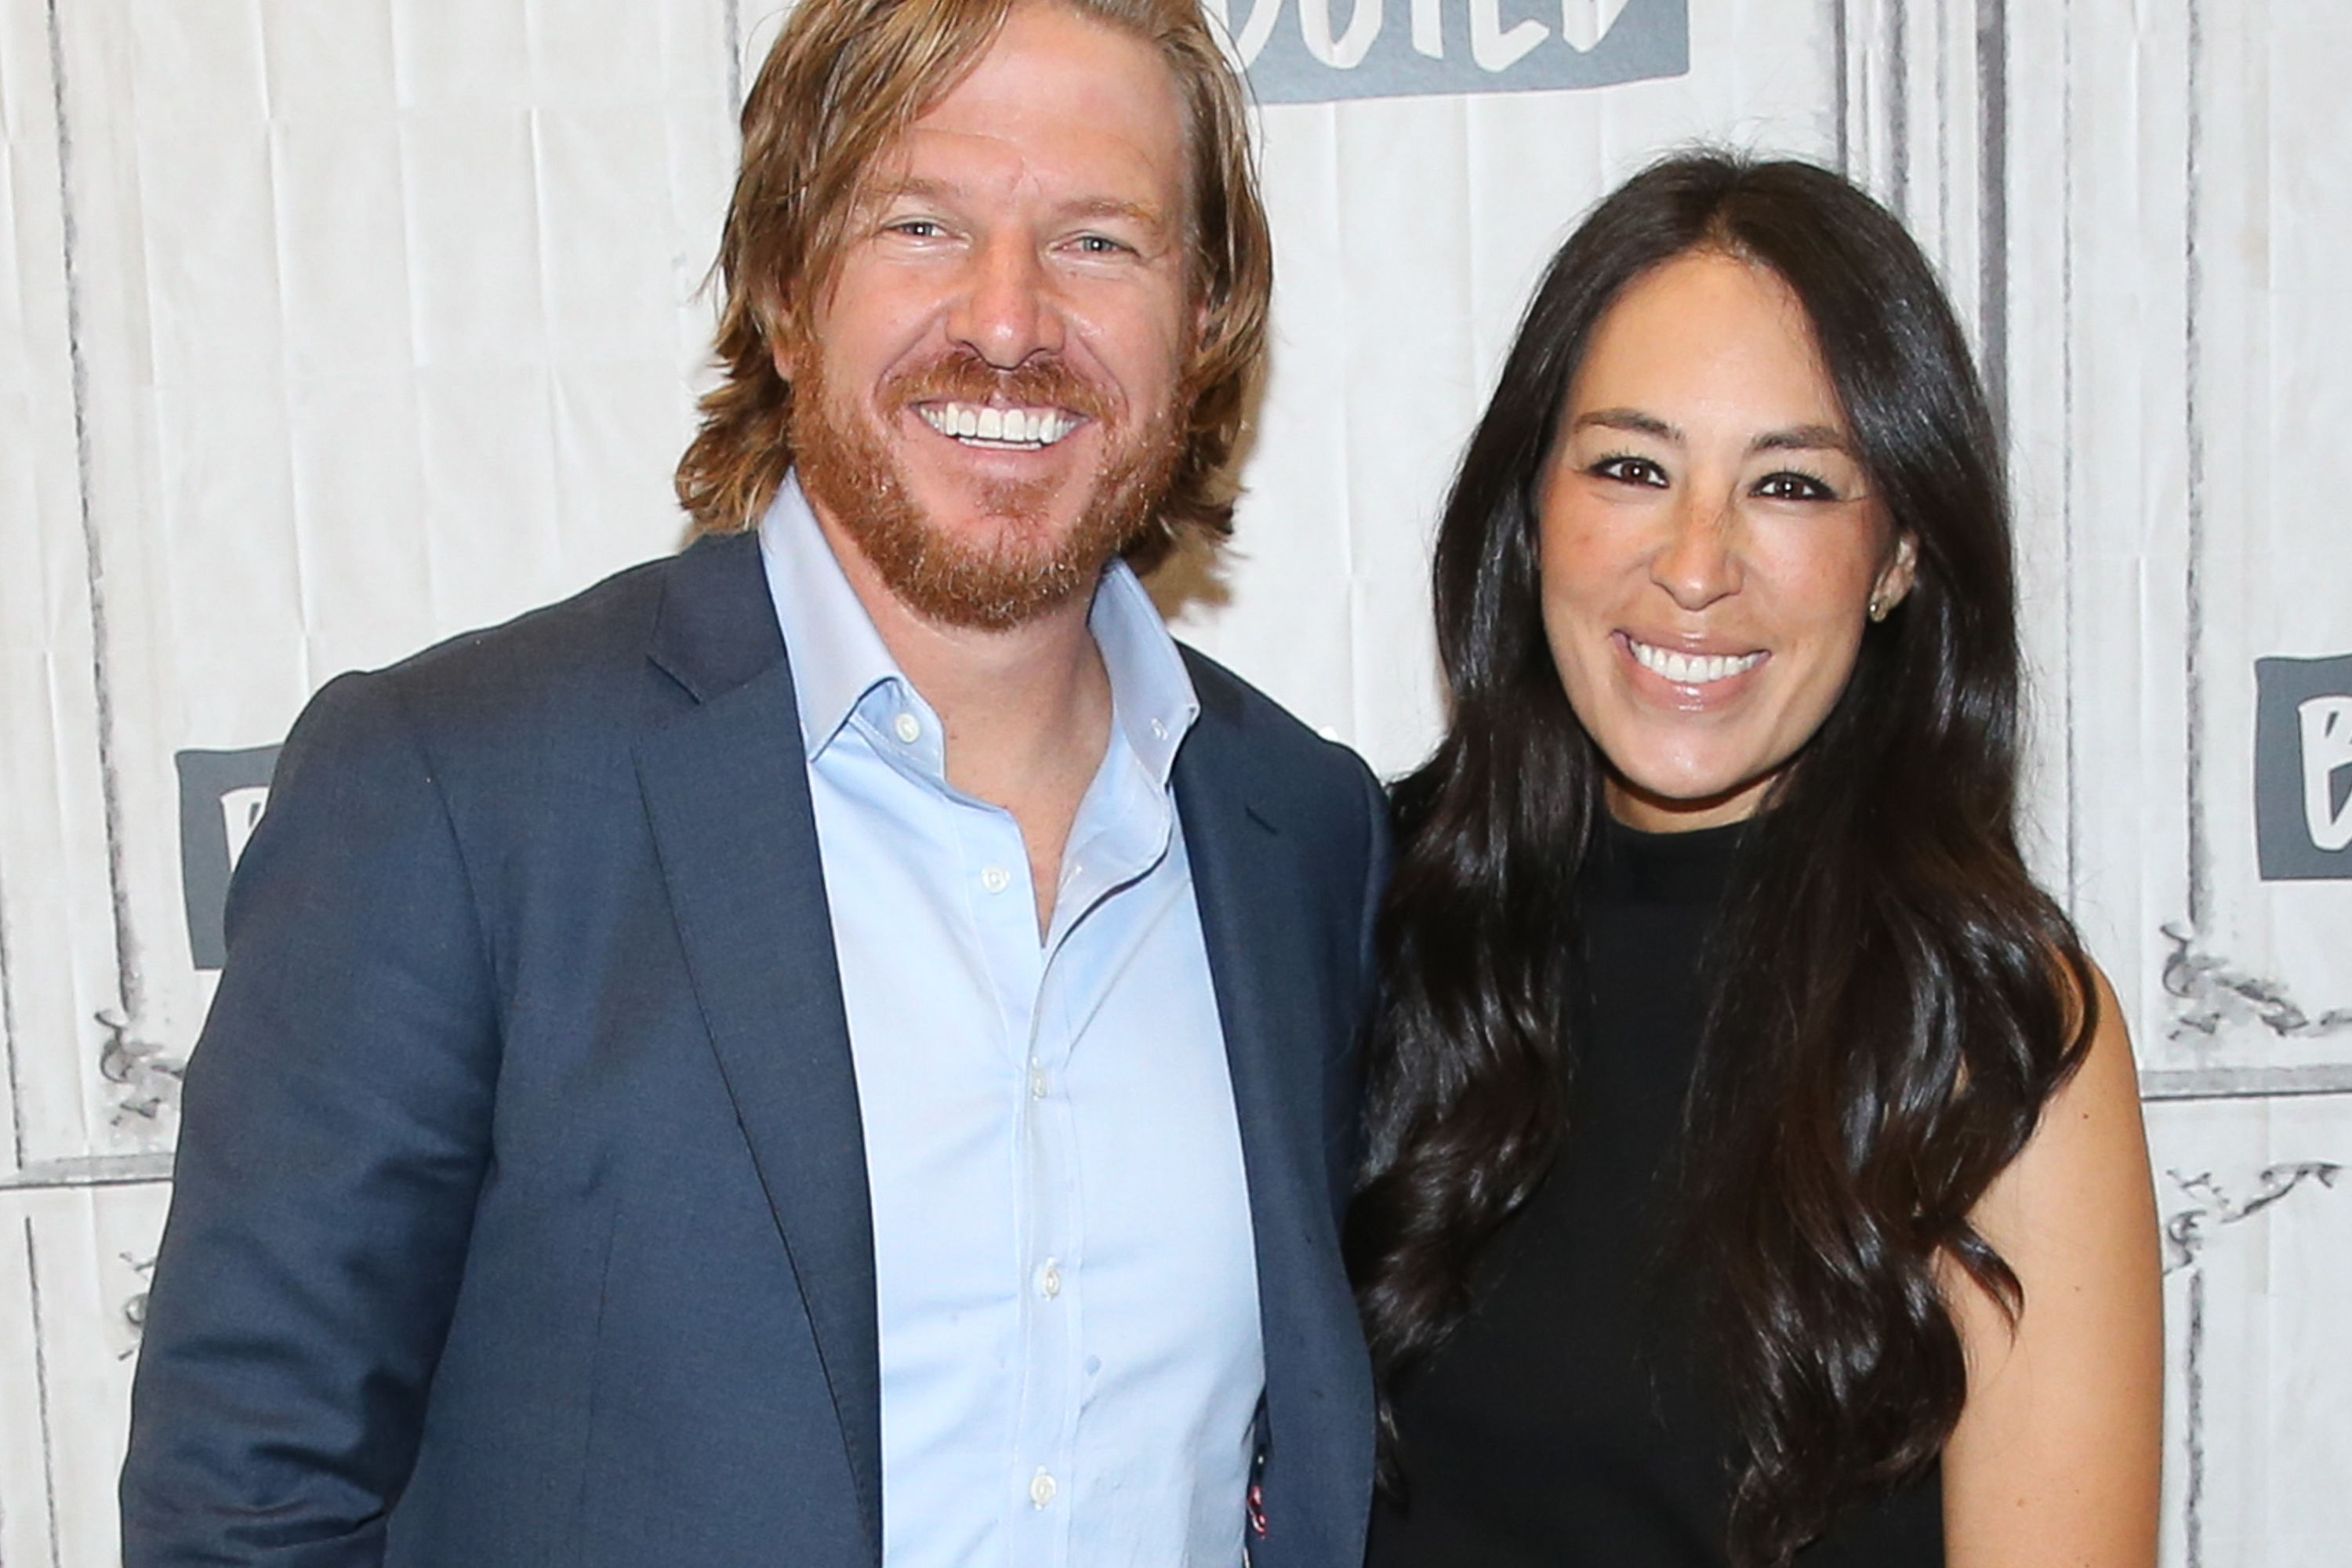 WATCH: Chip and Joanna Gaines Were So Lovely When Fans Saw Them on Their Minneapolis Date Night